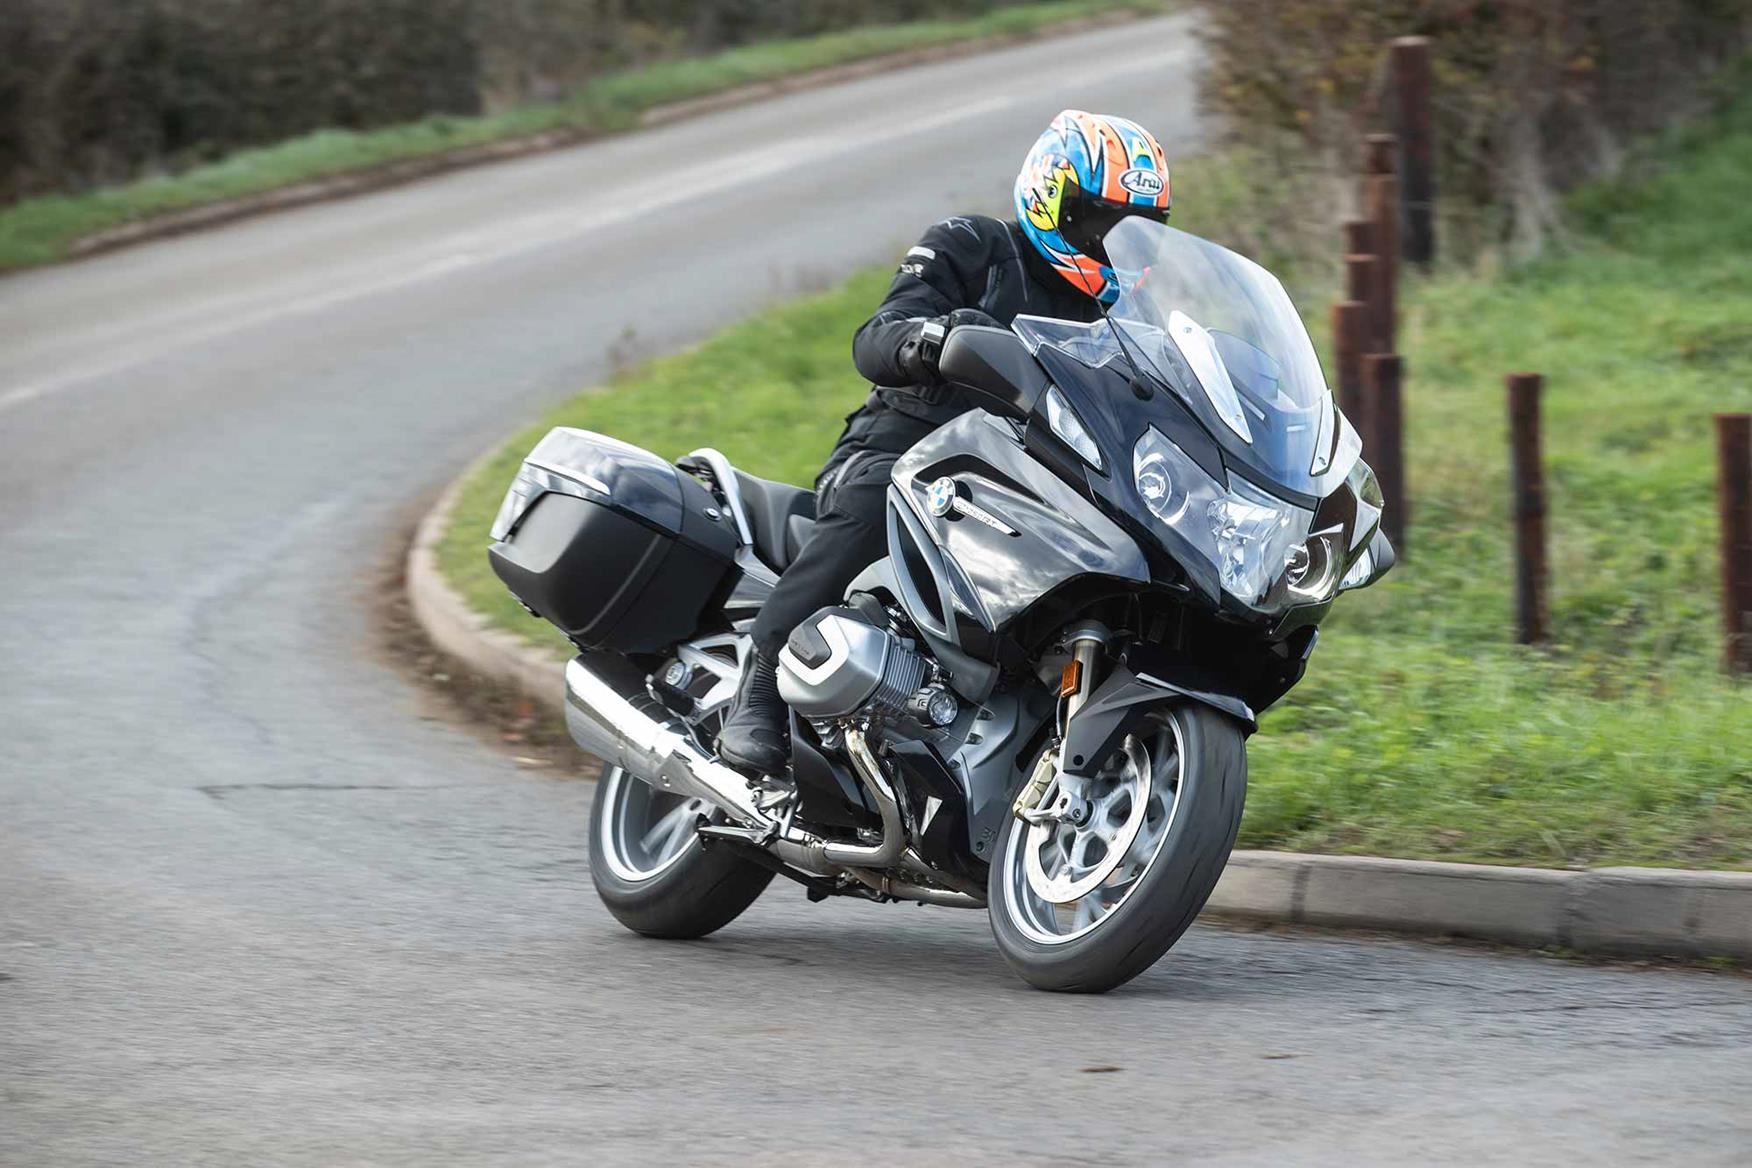 BMW R1250RT (2019-on) Review